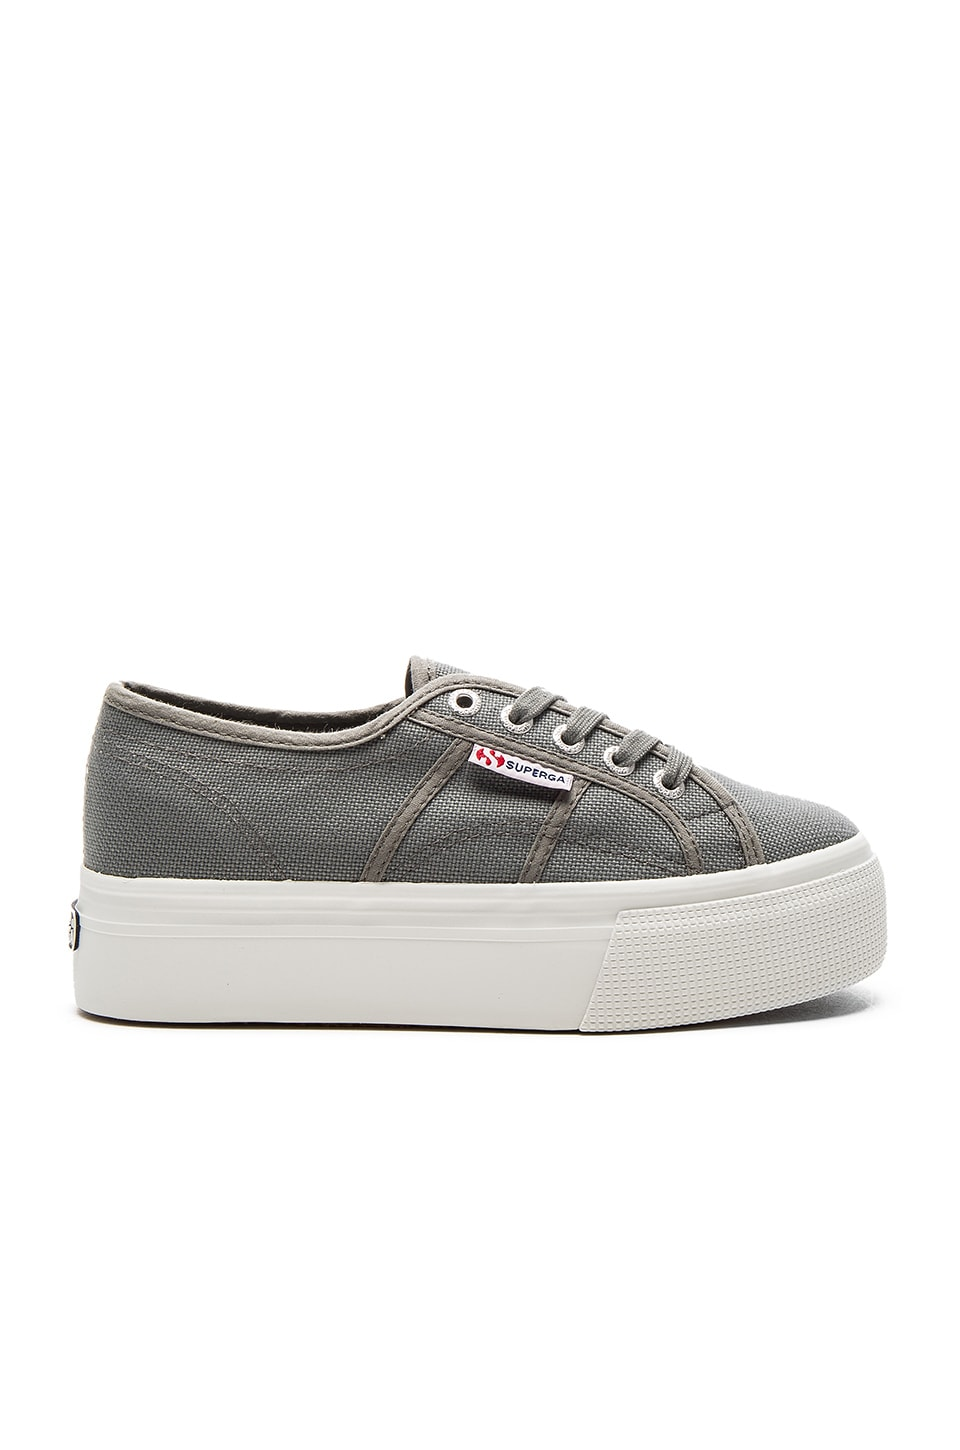 Superga 2790 Platform Sneaker in Grey Sage